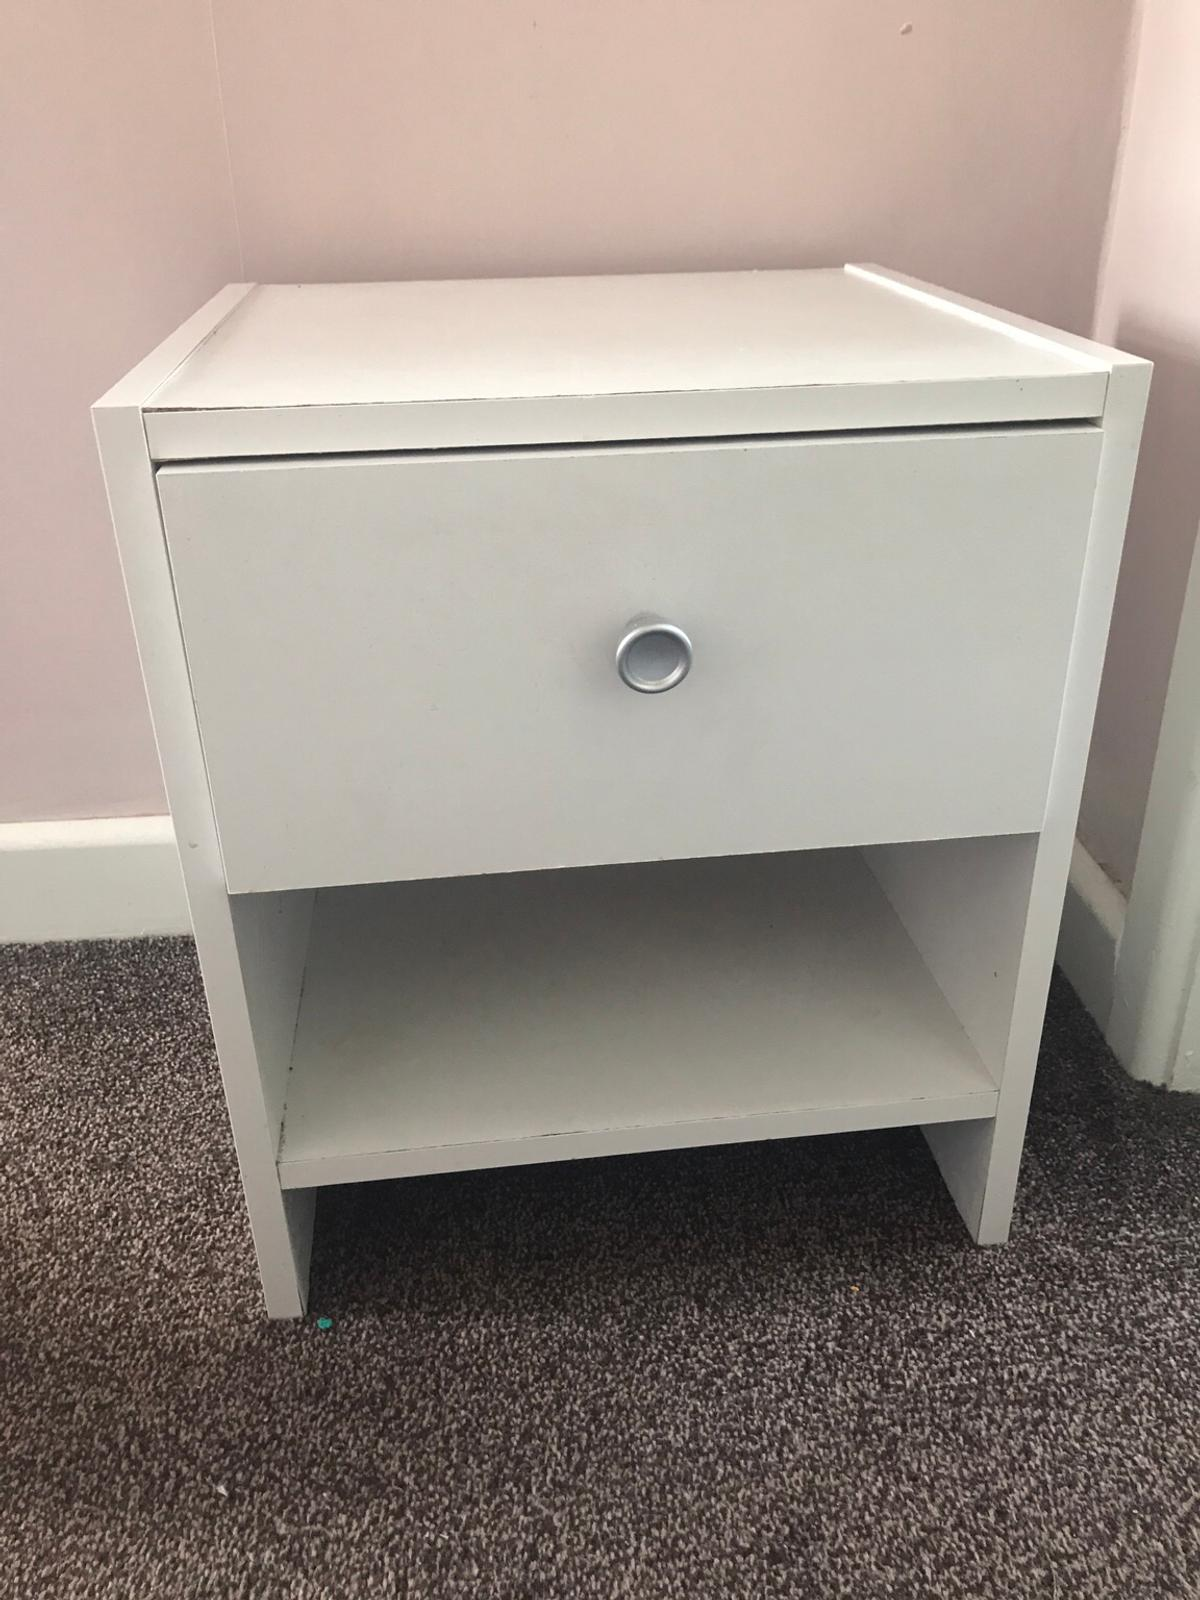 Picture of: Small White Bedside Table In Ws11 South Staffordshire For 5 00 For Sale Shpock